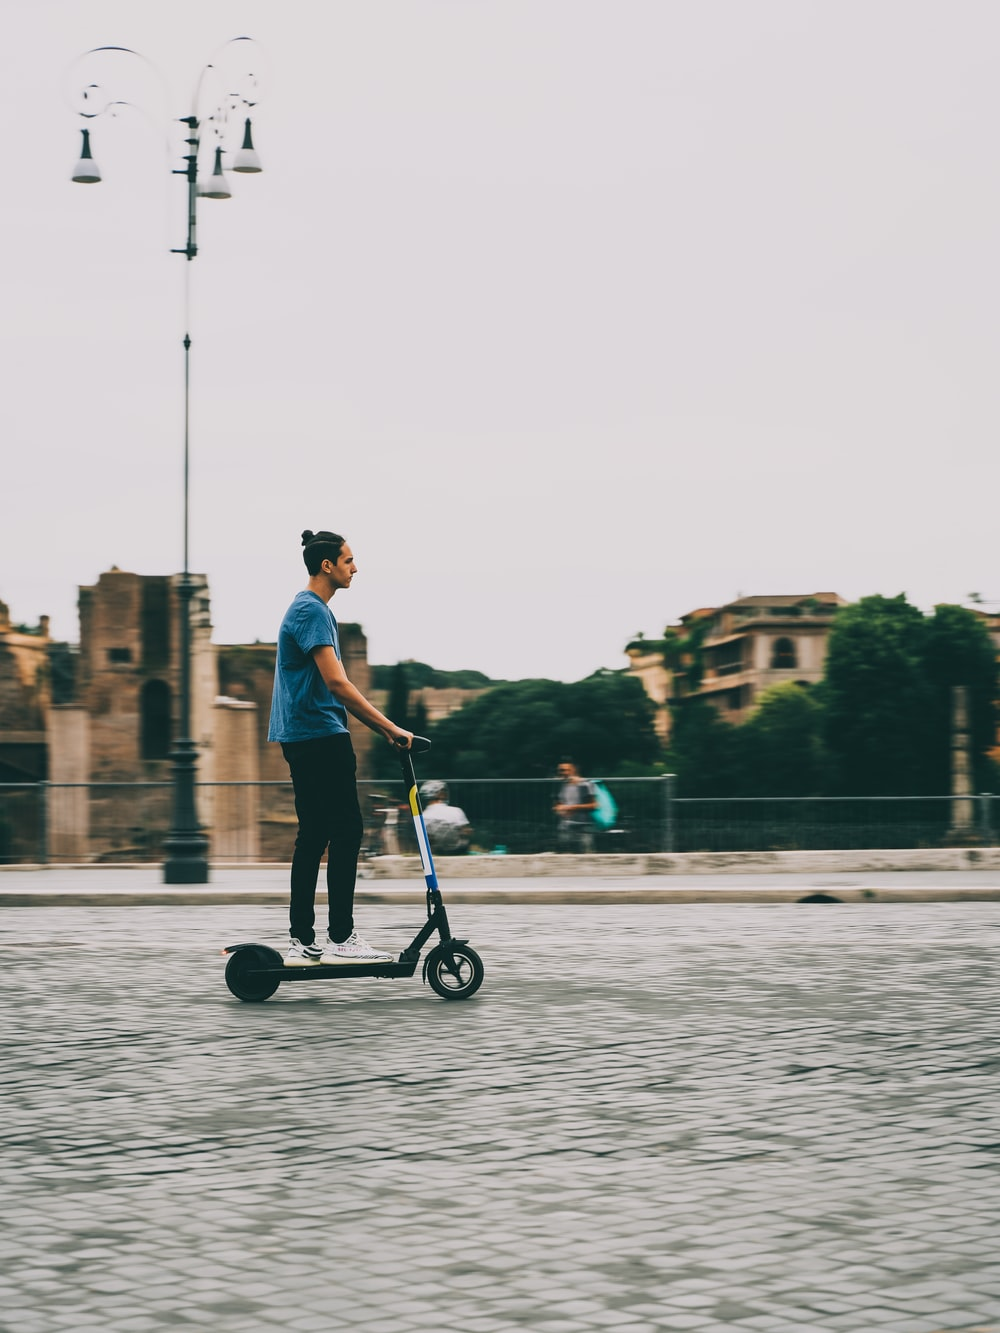 man in pink shirt and black pants riding kick scooter on water during daytime